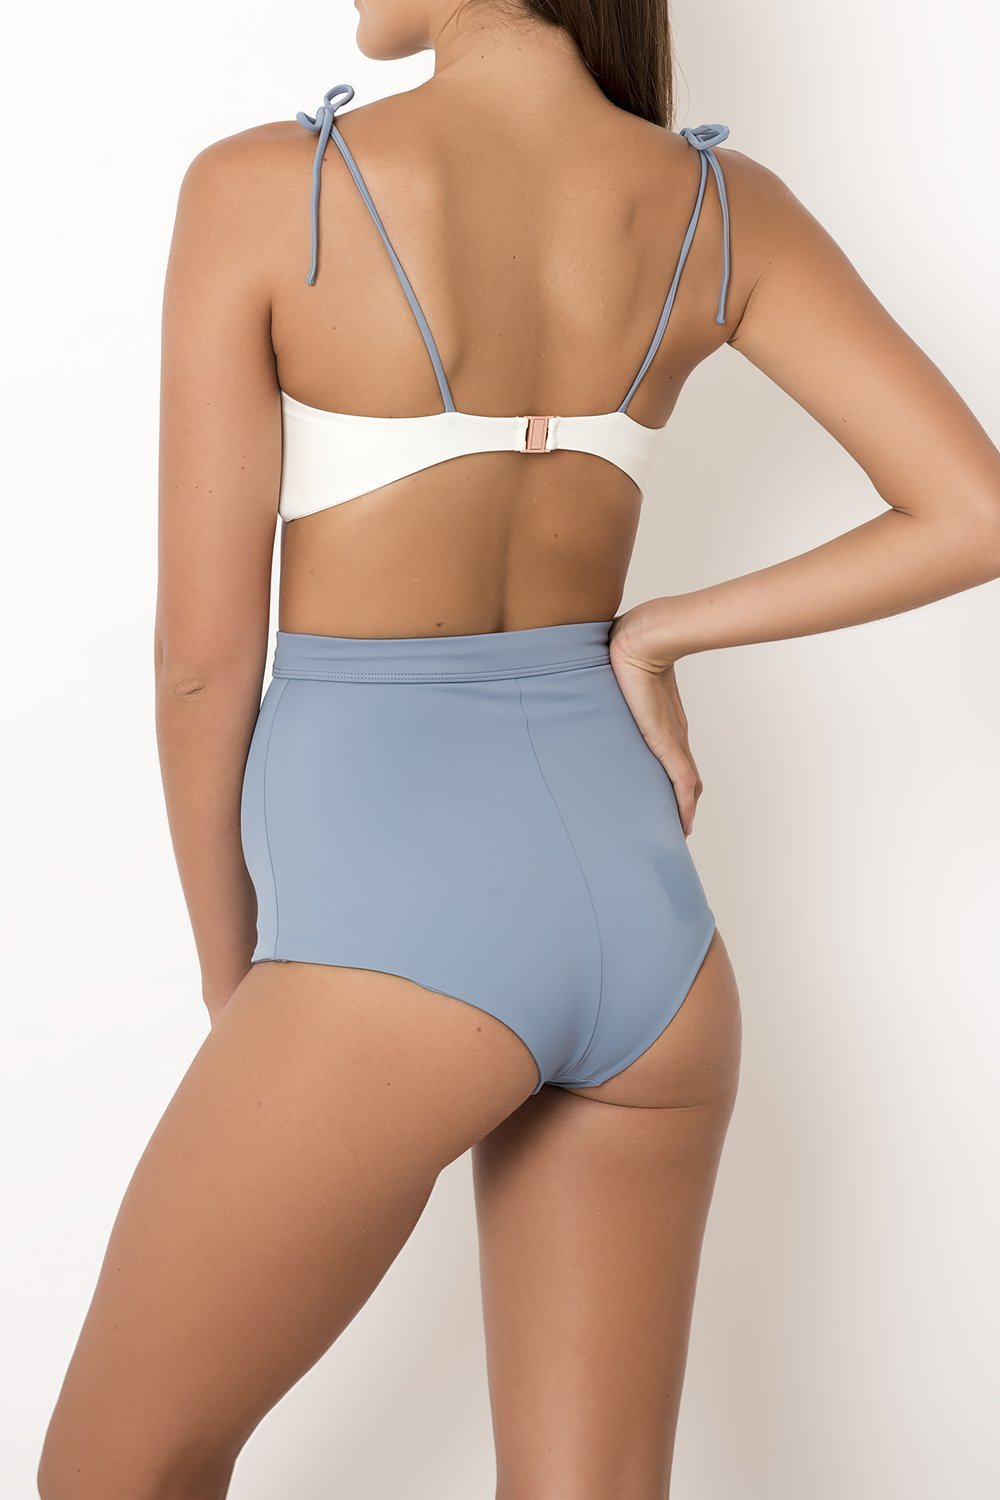 Palm - TALUA Bottom Ice Blue/Ivory-Palm Swimwear-Nomads Cove